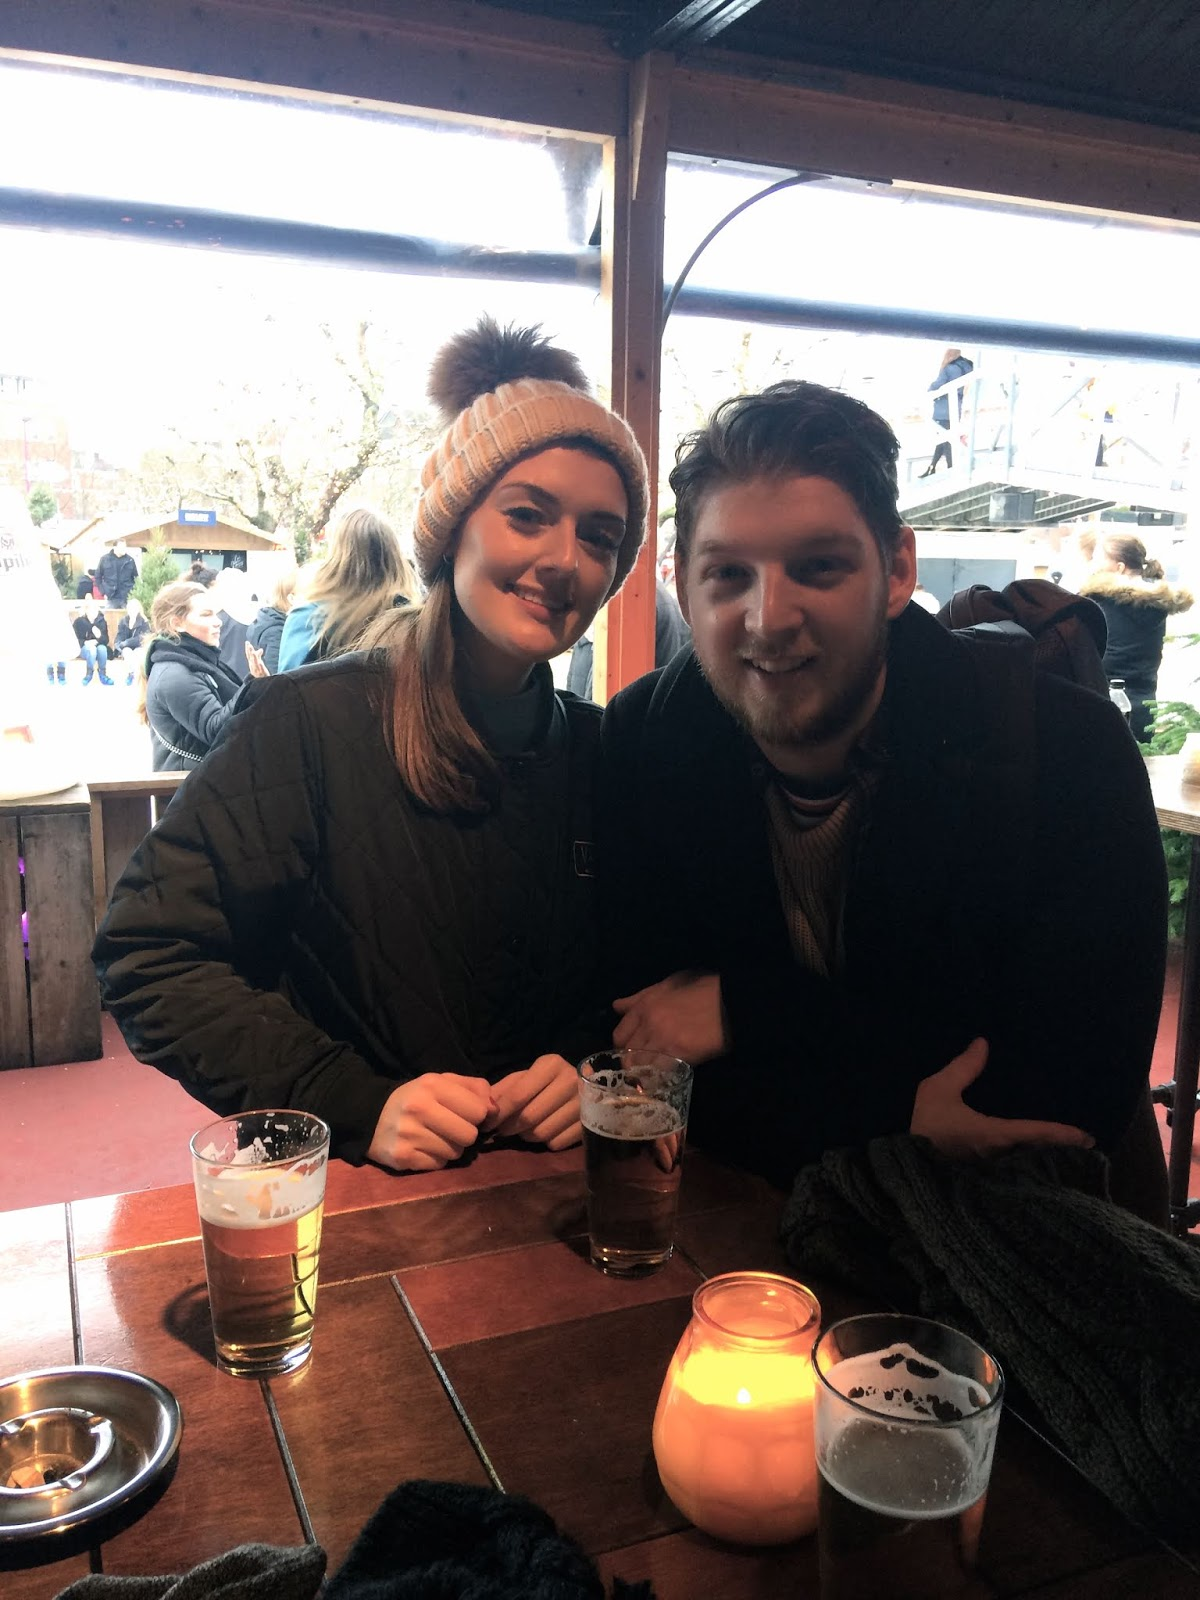 Best friends enjoying a beer in Amsterdam